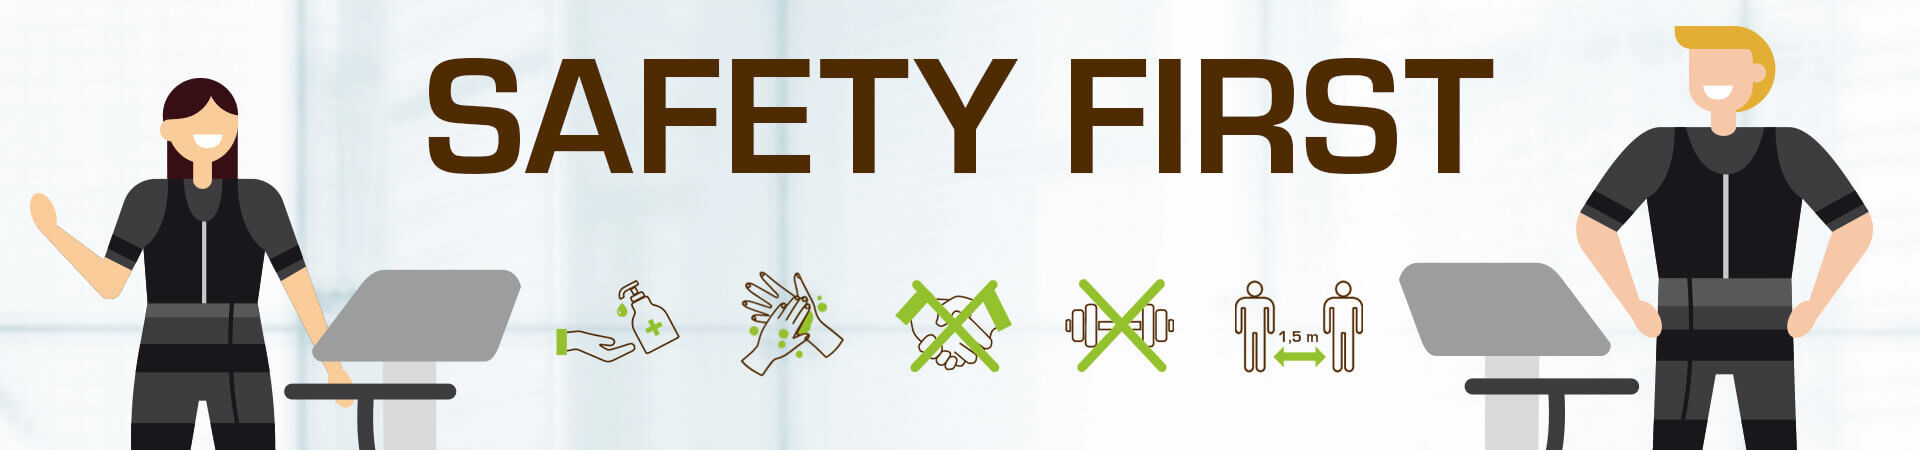 Safety_First-3-1920x450